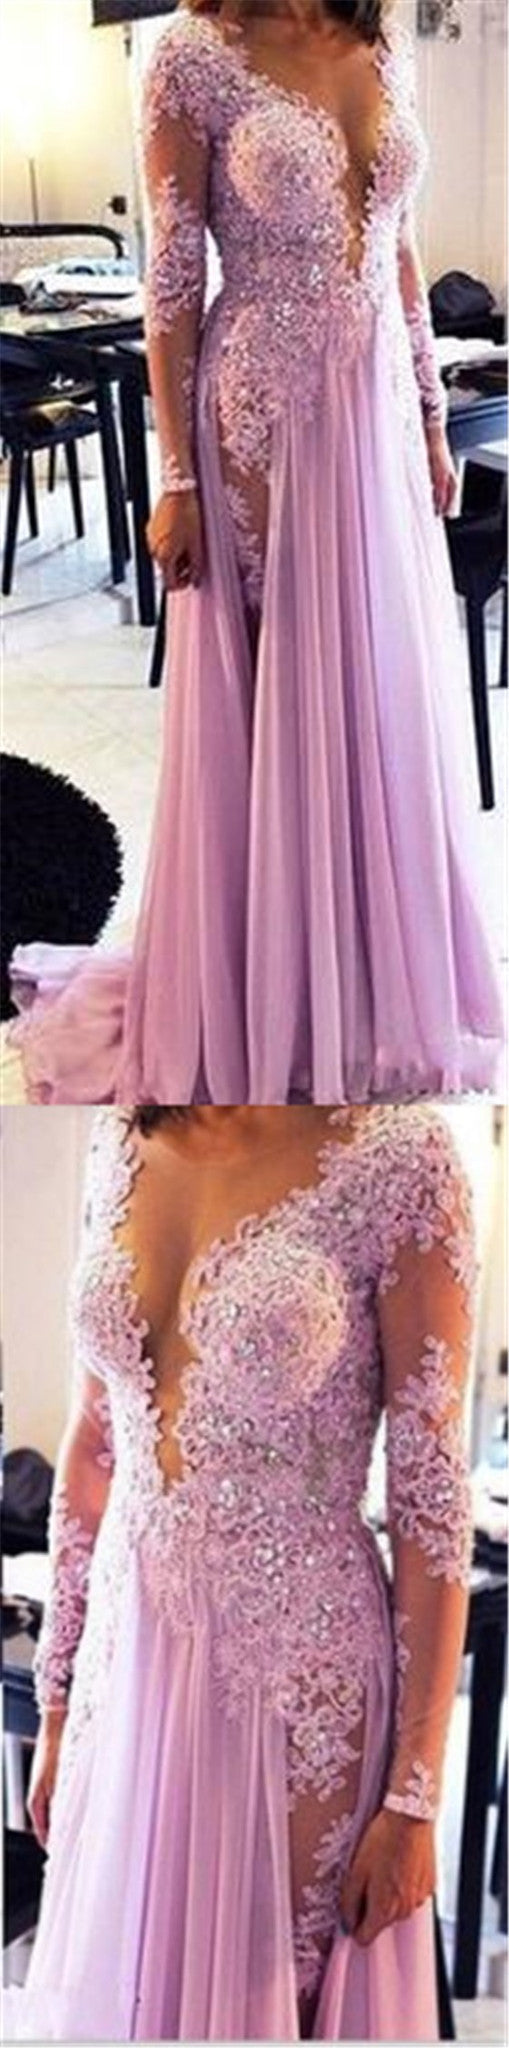 Long Sleeve Lilac Clairvoyant Outfit Lace Rhinestone Sexy Deep V-neck Evening Party Long Prom Dresses ,PD0199